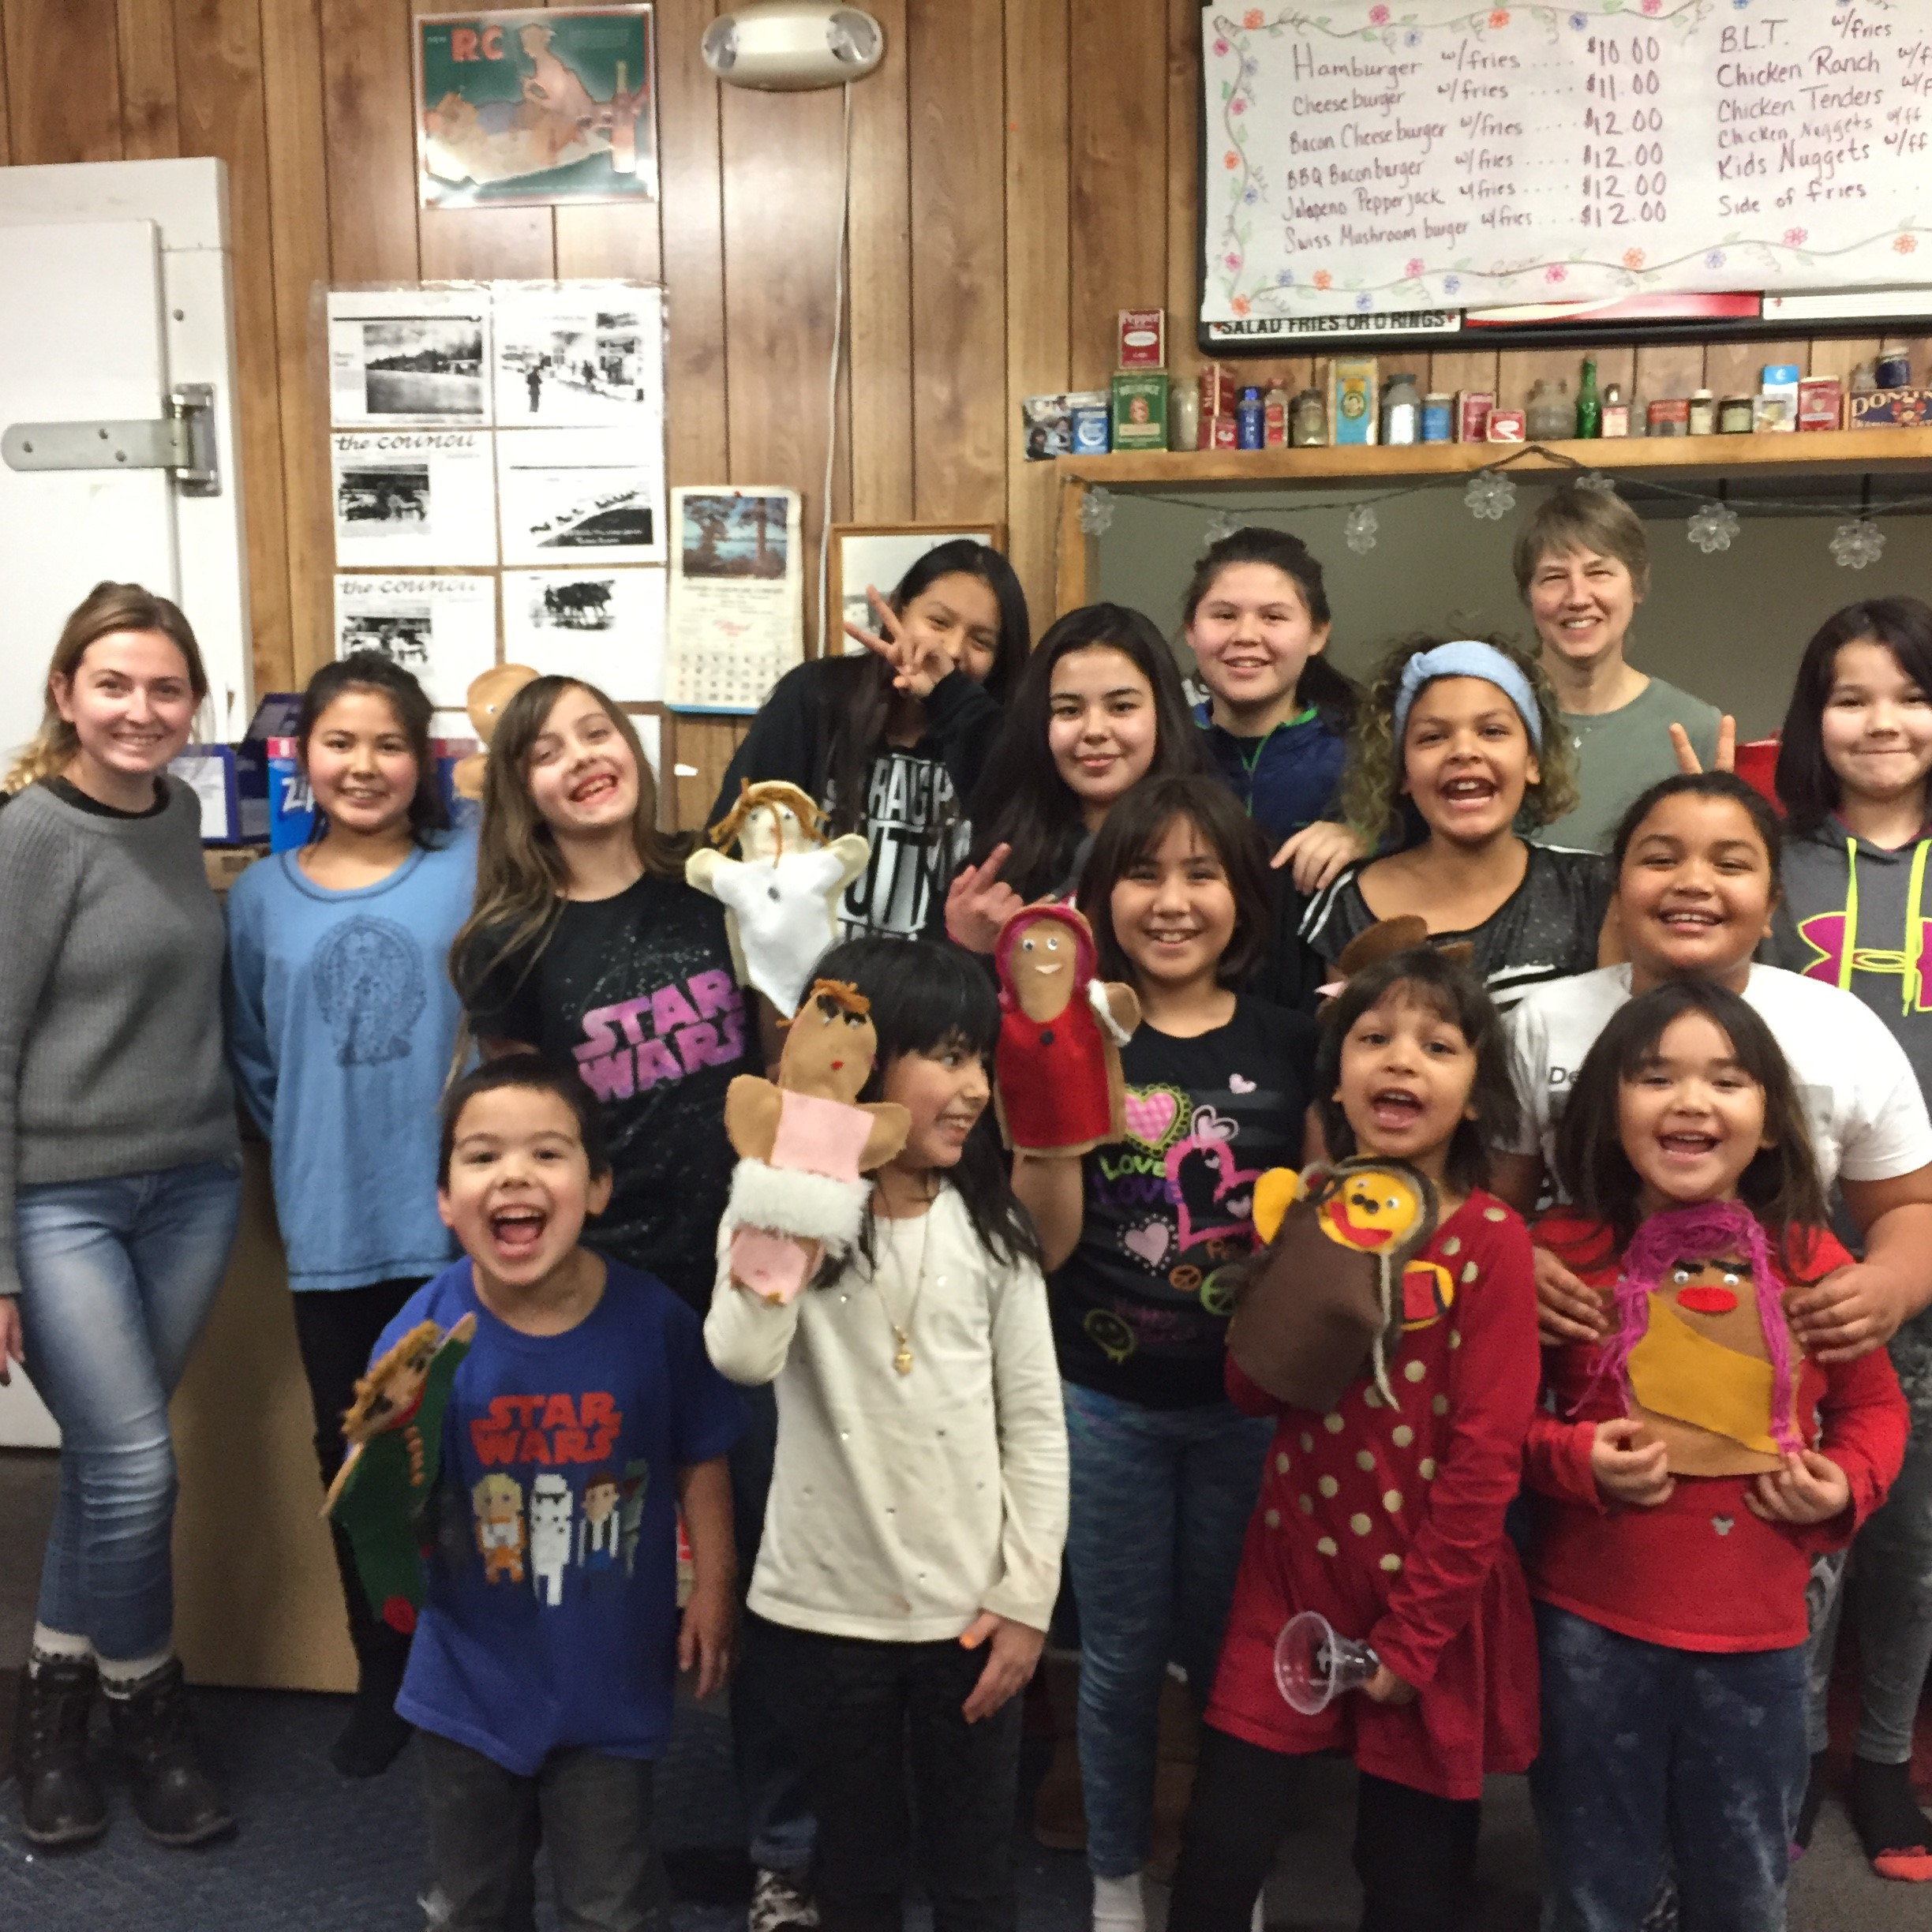 Rosemary and Carissa spent four days in Tanana with a local woman, the grocery store owner and advocate for the youth of the village. They led craft projects, including making puppets, and focused on building relationships with the village and showing the youth Jesus' love.